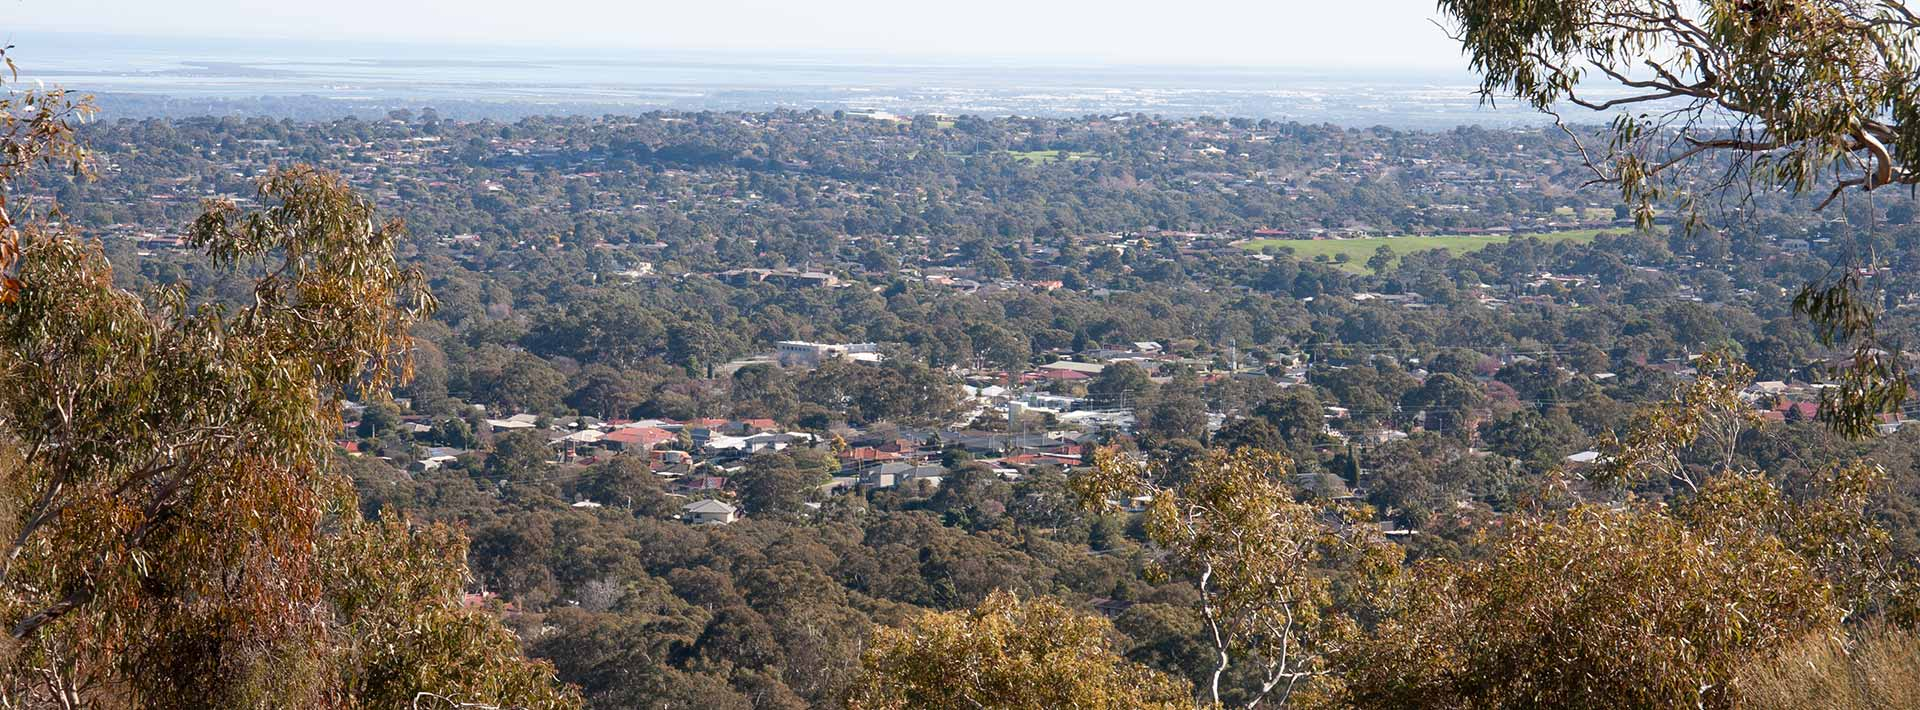 View over Adelaide suburbs, with the ocean in the distance